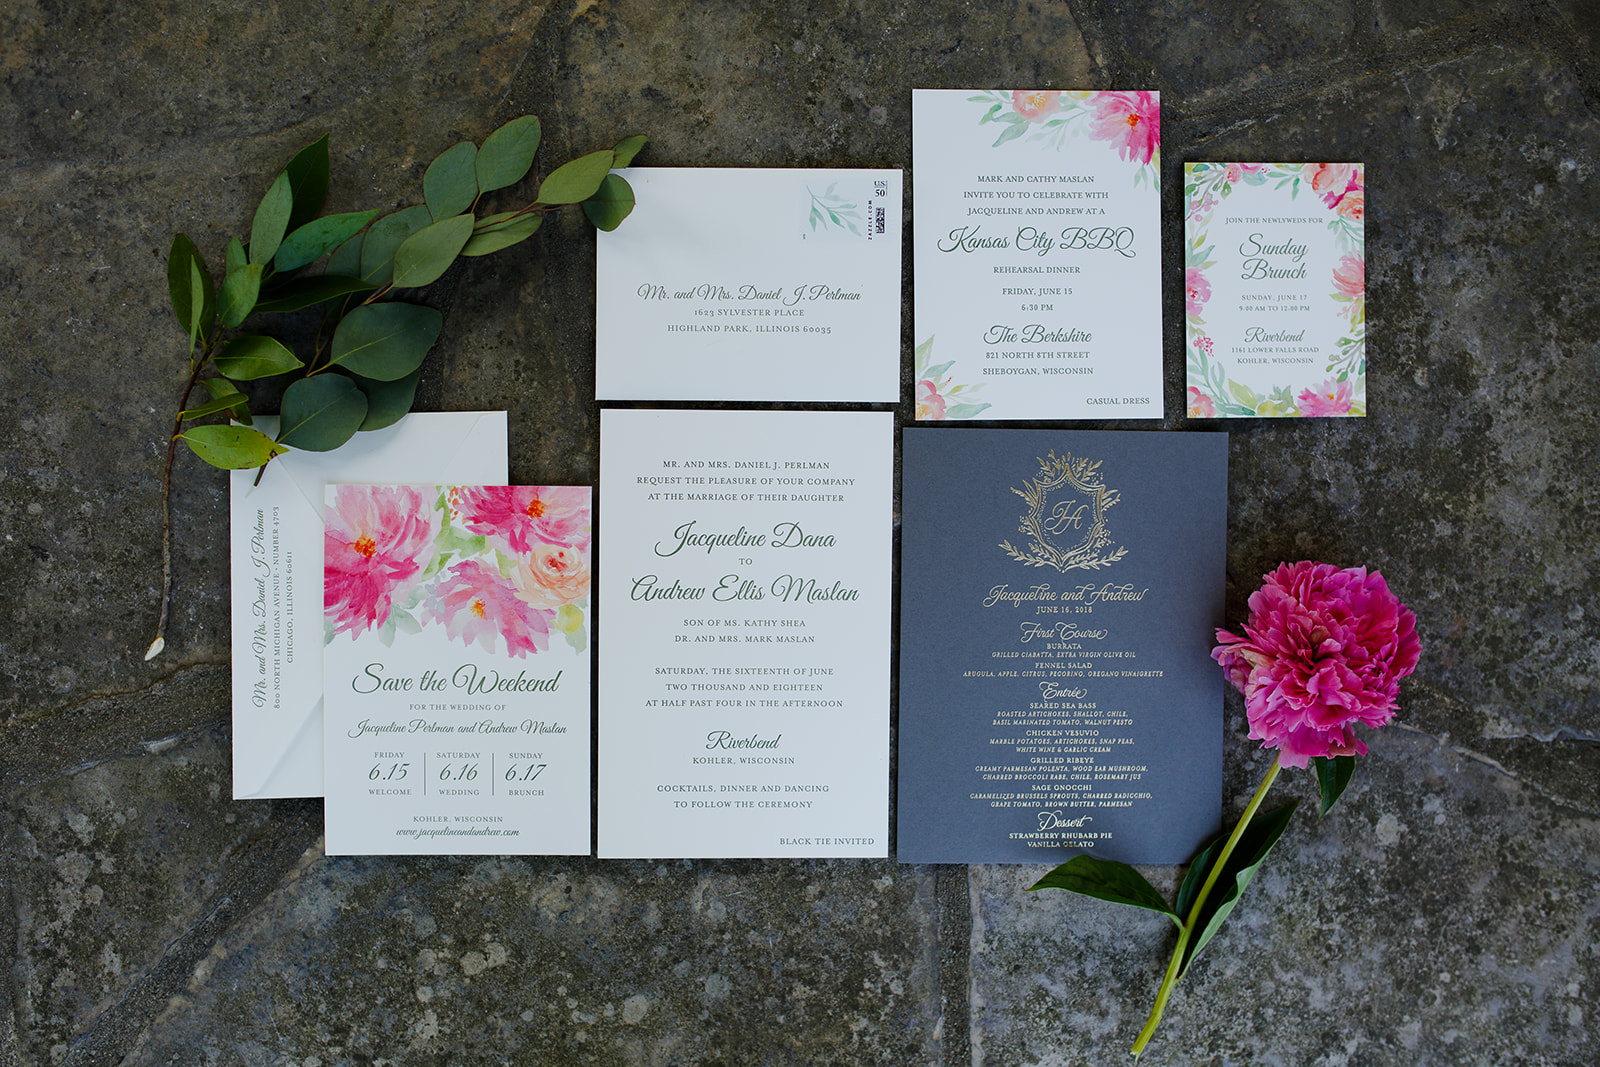 Paper and invitation suite for wedding at Riverbend Club in Kohler, Wisconsin